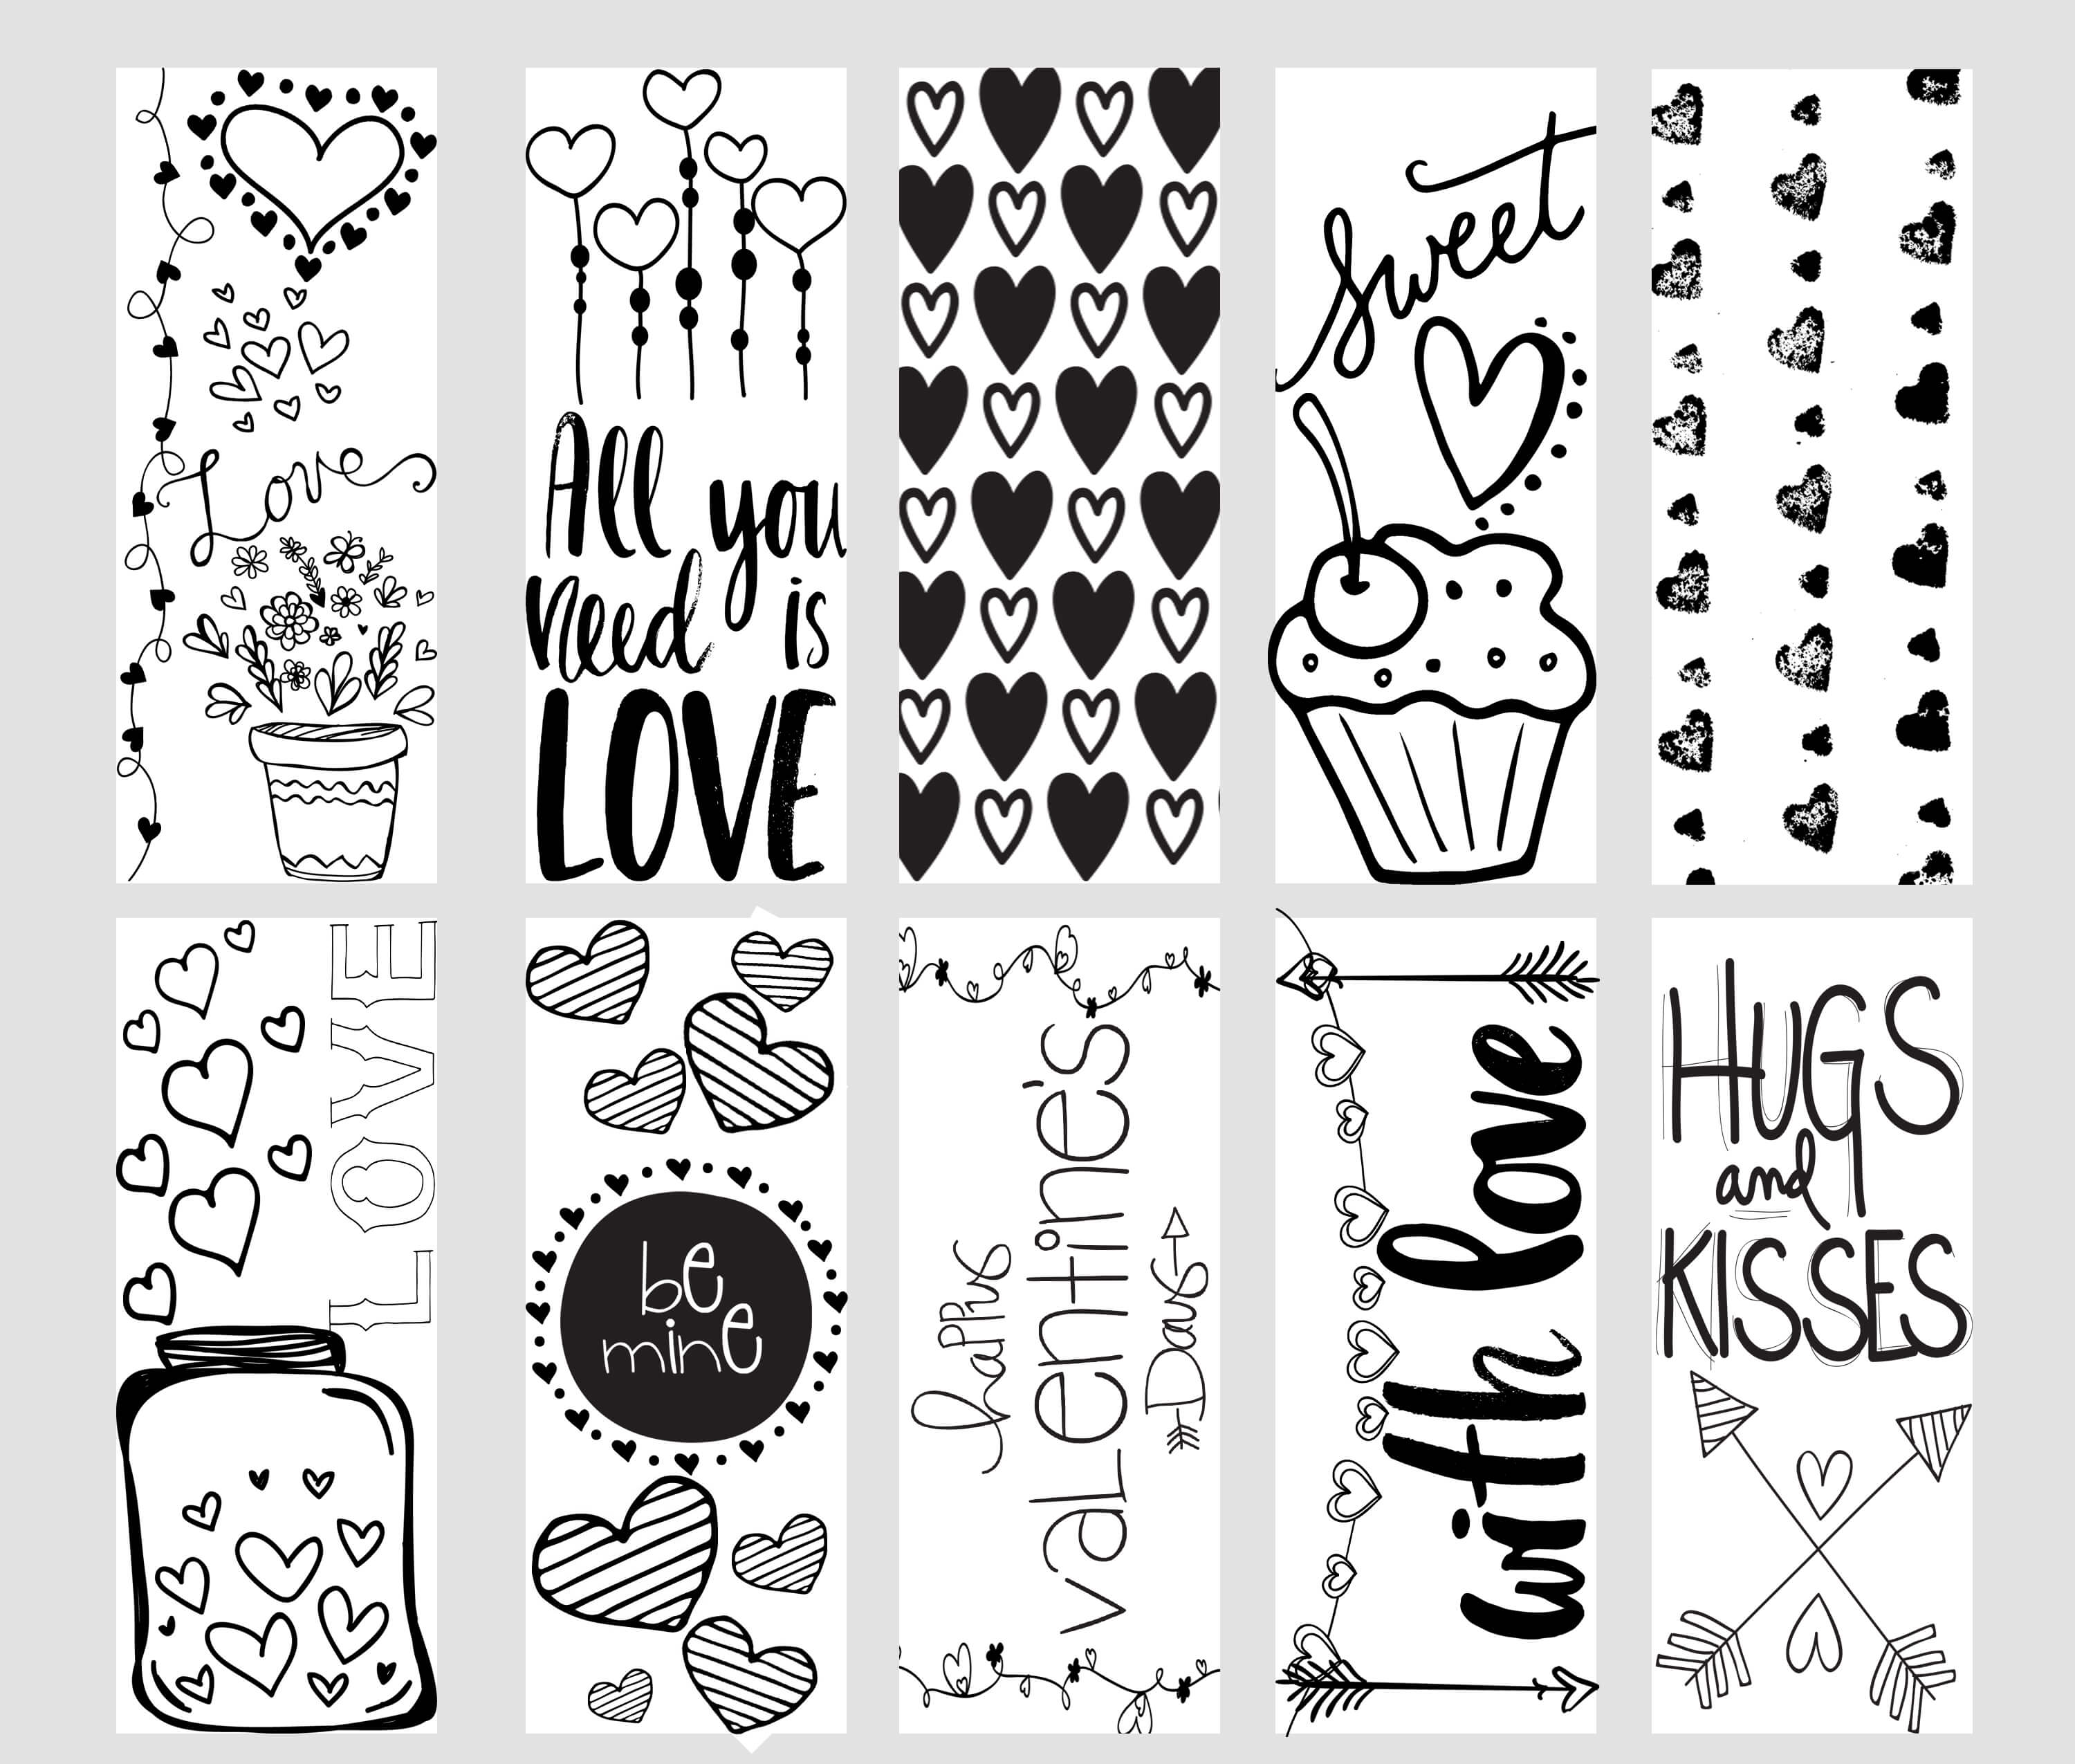 photo about Bookmarks Printable named Valentine Printable Coloring Web site Bookmarks - Kleinworth Co